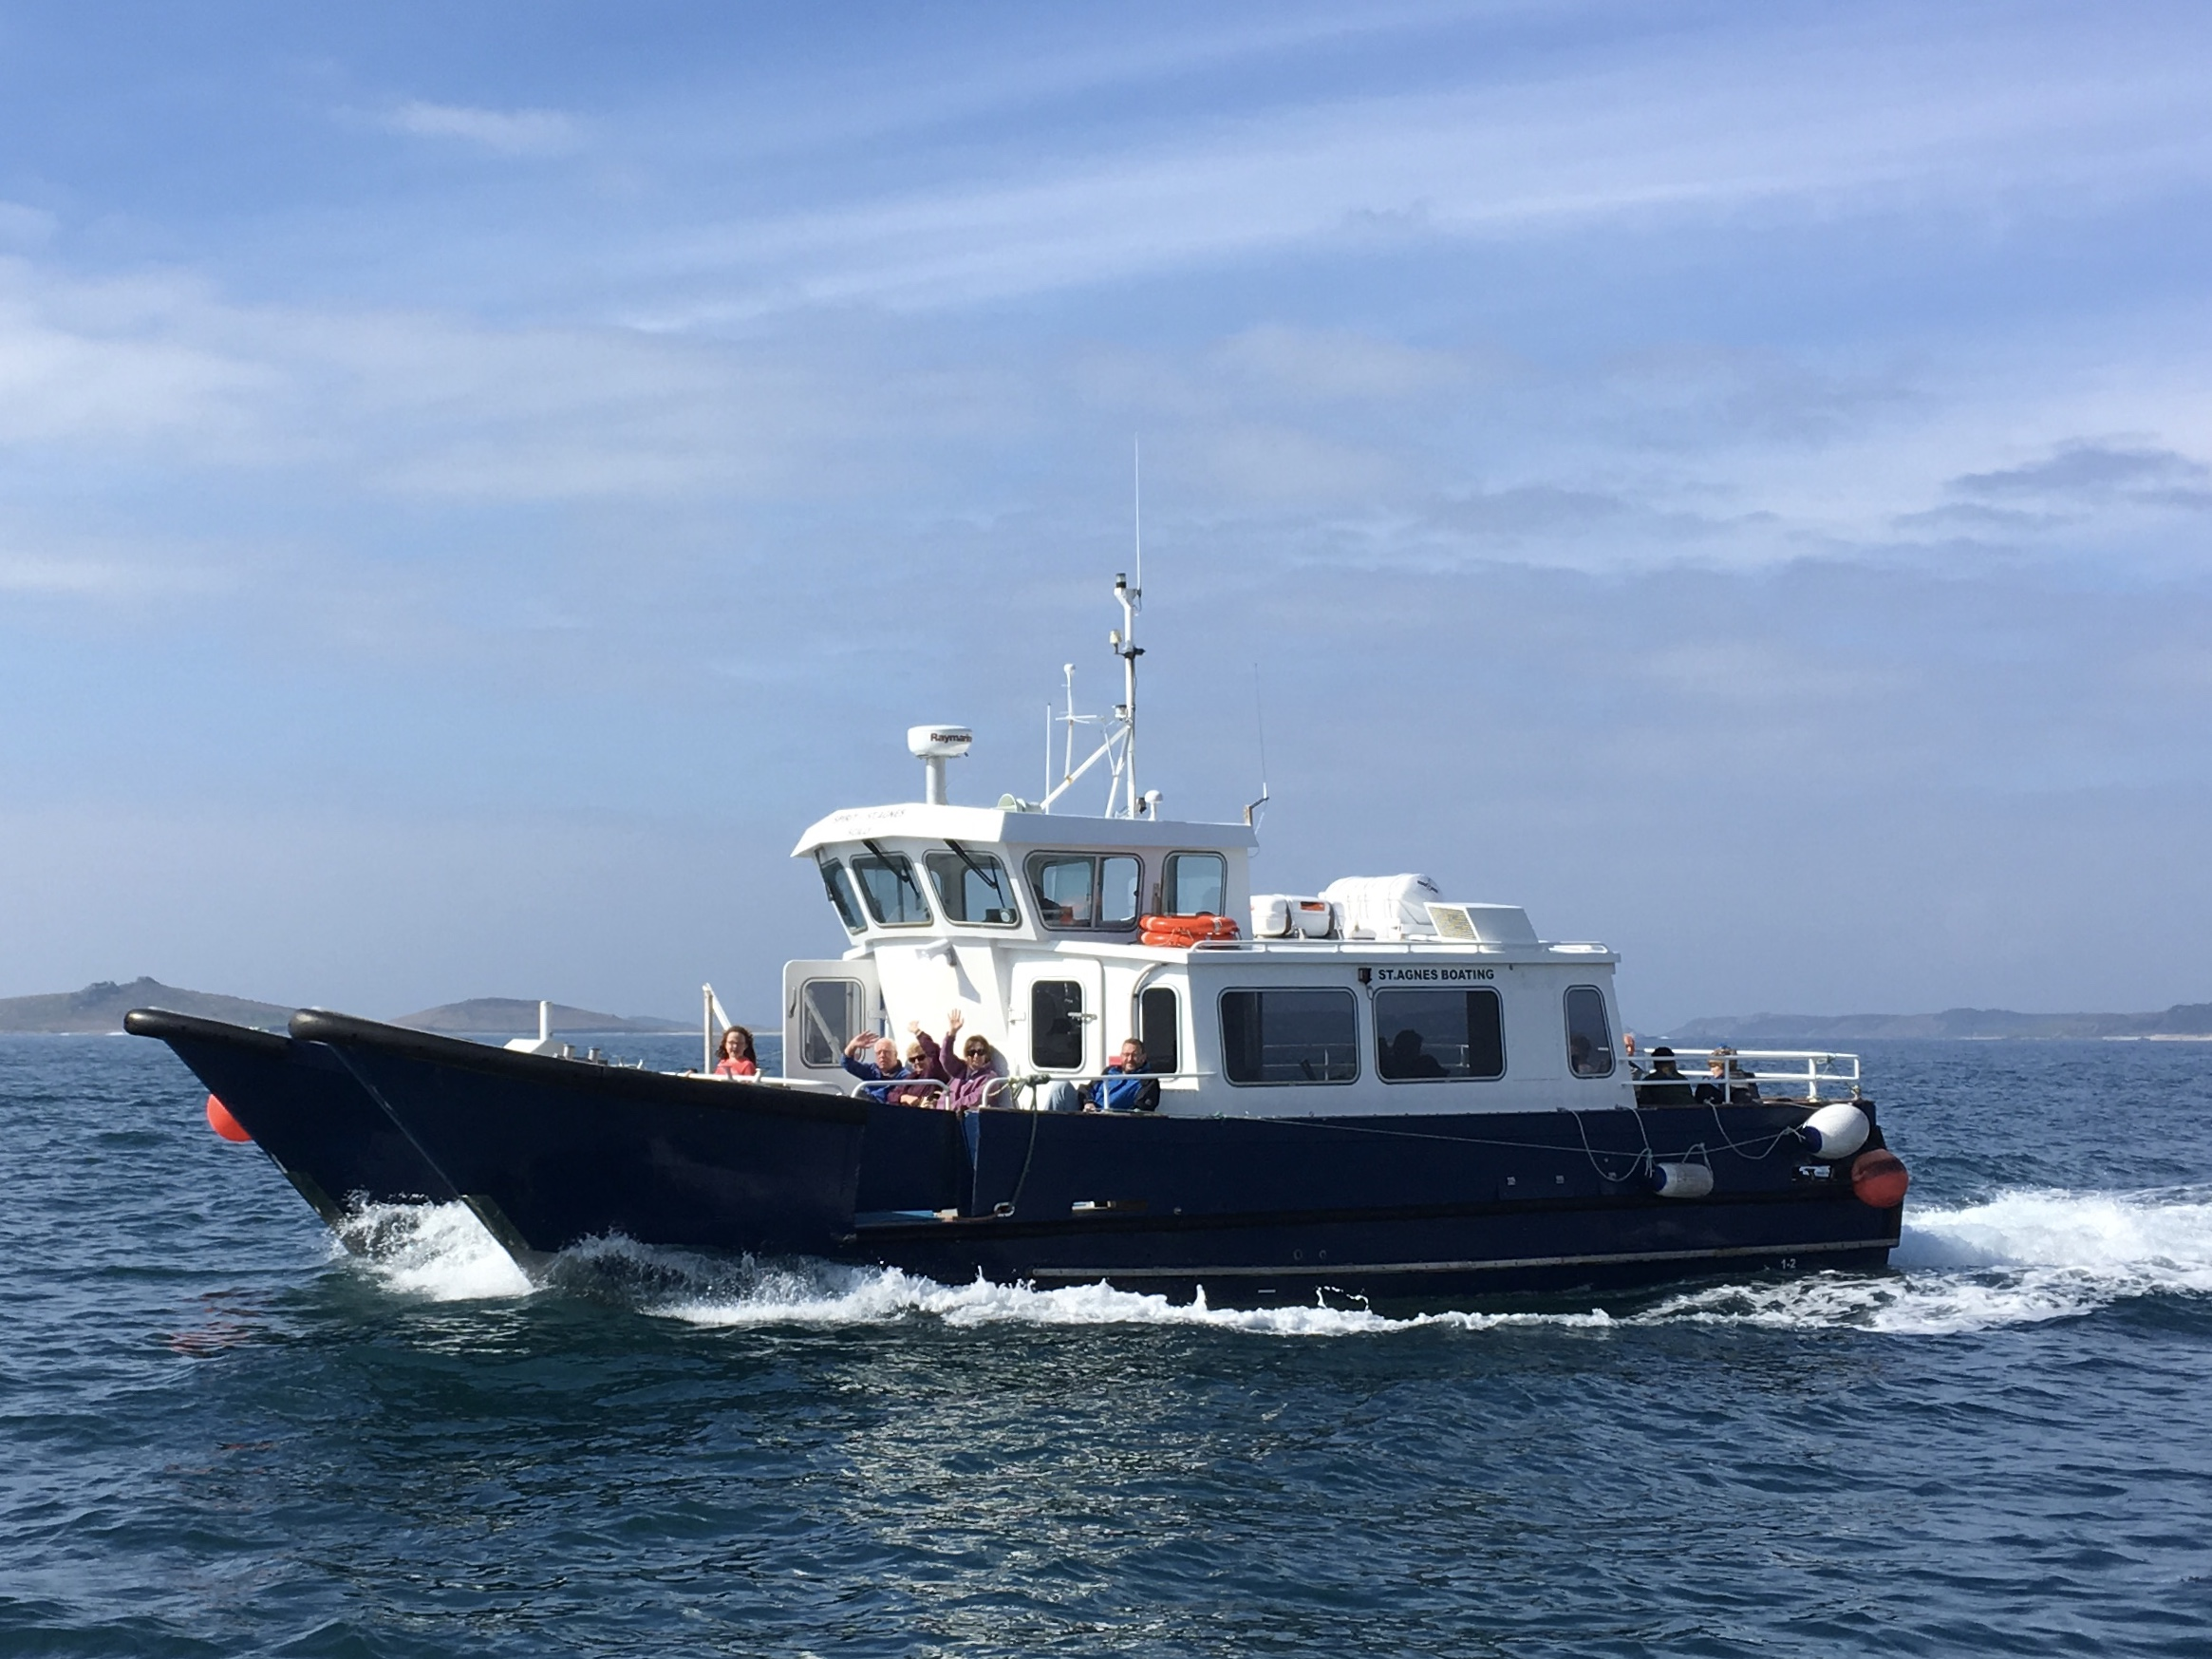 The Spirit of St Agnes on a gorgeous summers day. Image courtesy of John Peacock and St. Agnes Boating.